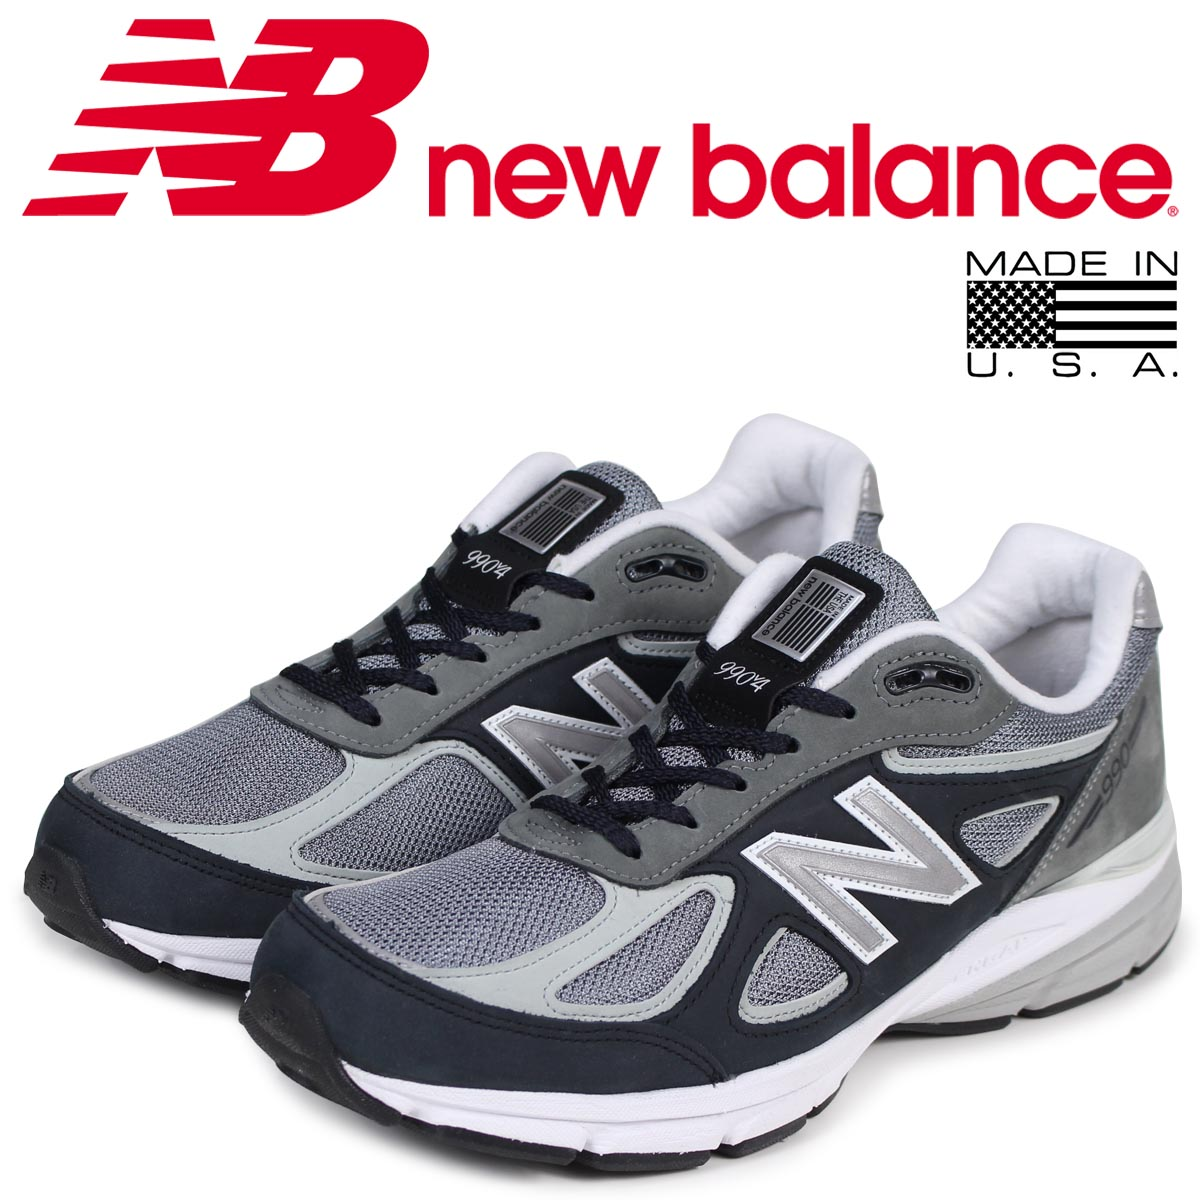 sale retailer 36c01 245f6 new balance 990 men's New Balance sneakers M990XG4 D Wise MADE IN USA gray